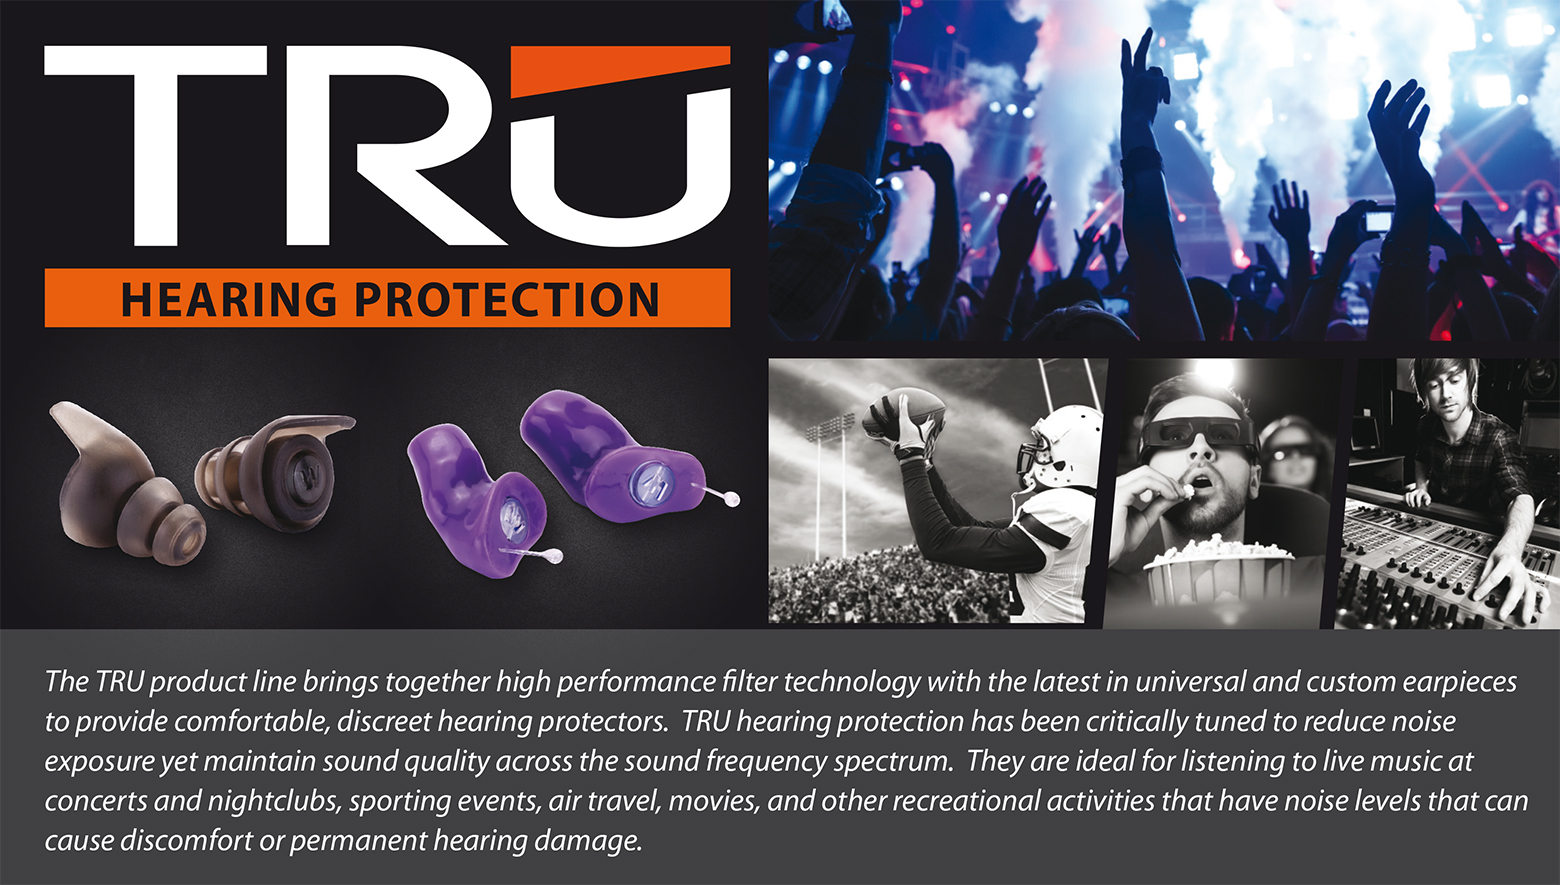 TRU Hearing Protection